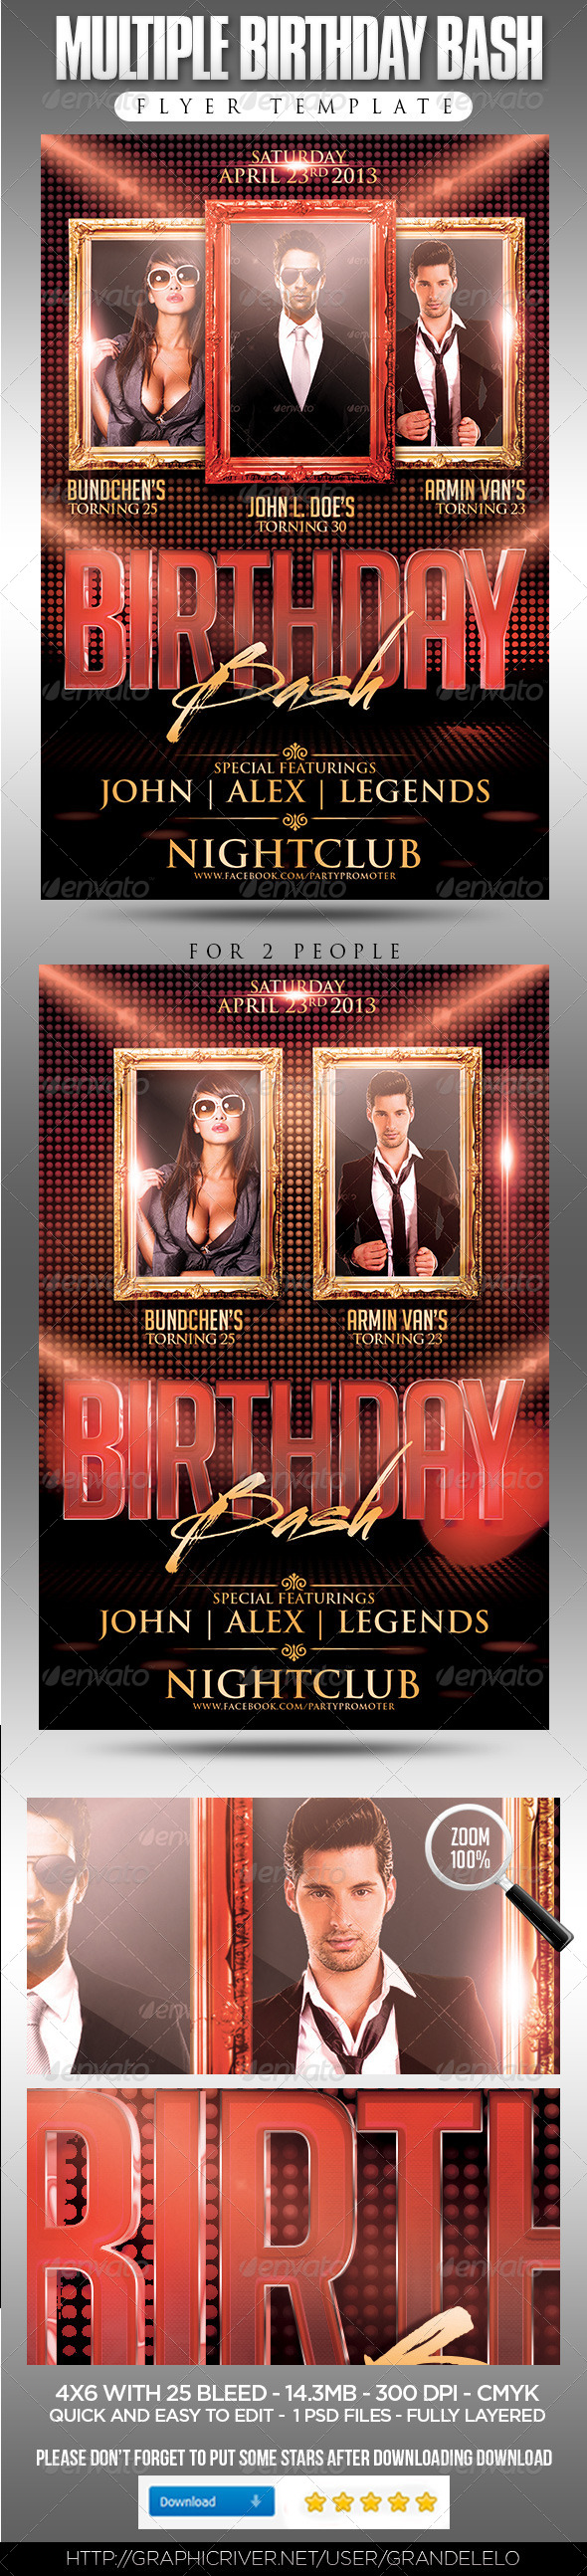 Multiple Birthday Bash Flyer Template - Clubs & Parties Events